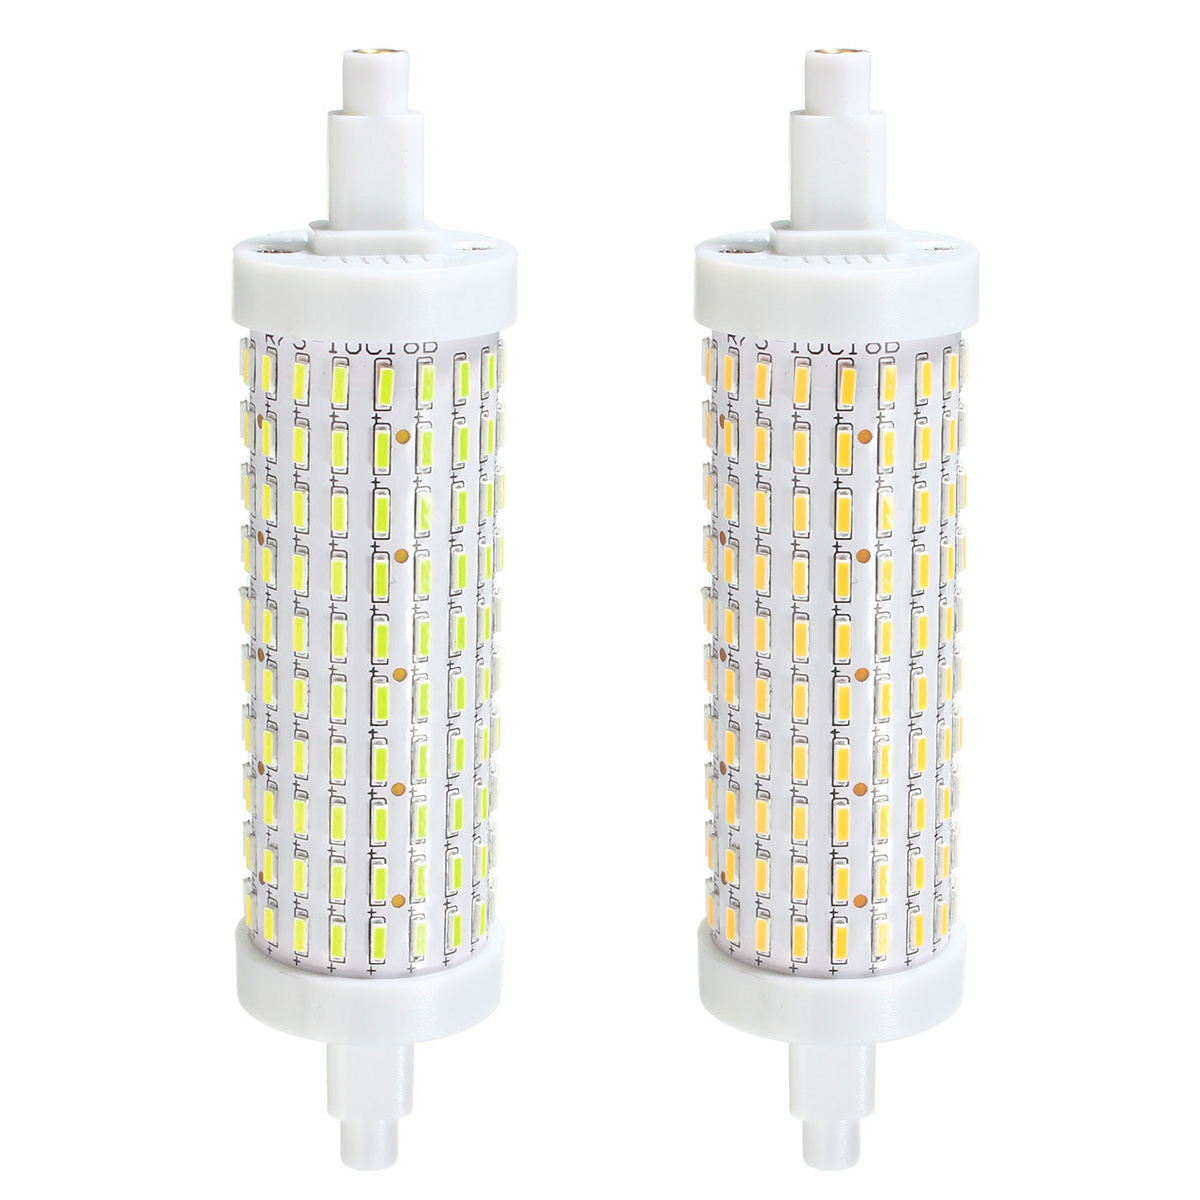 Dimmable R7S 118mm 8W 180 SMD 4014 LED Pure White Warm White Light Lamp Bulb AC85-265V